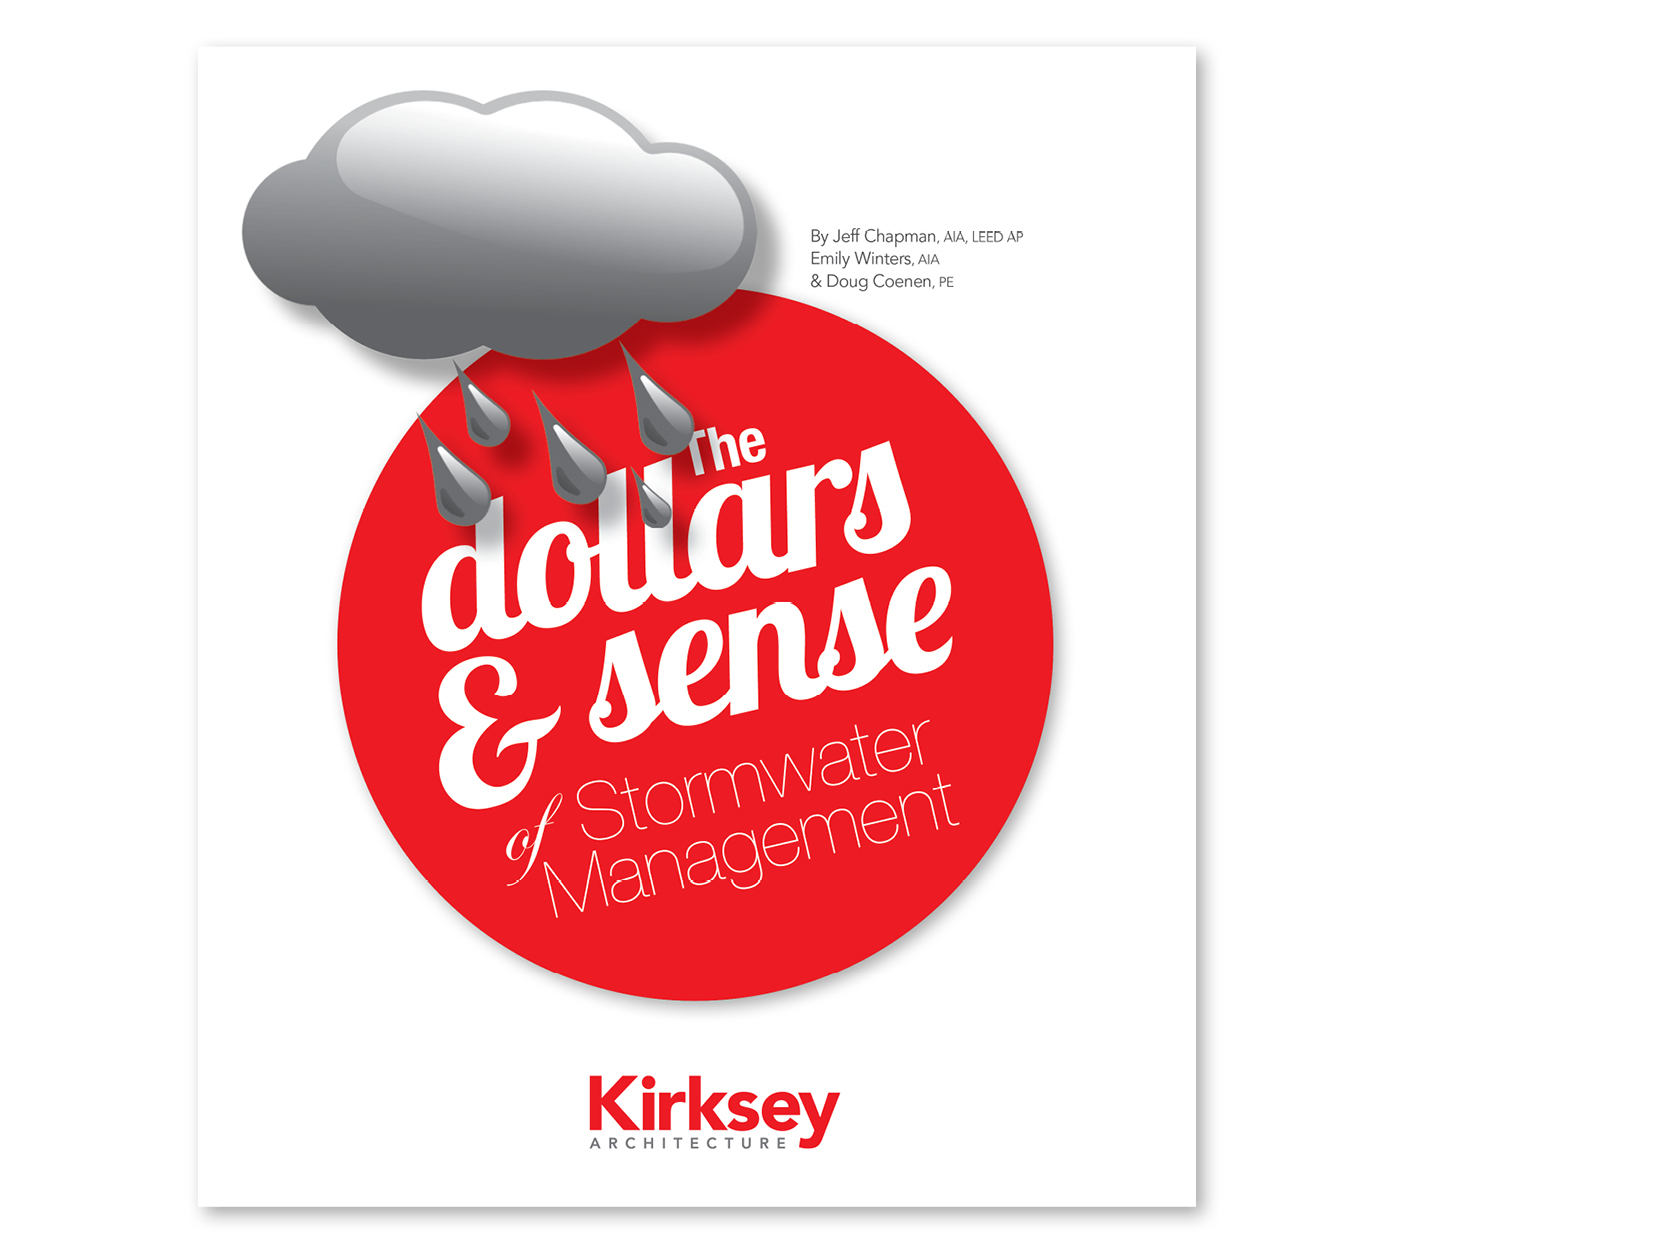 Preview of the resource library item for The Dollars & Sense of Stormwater Management